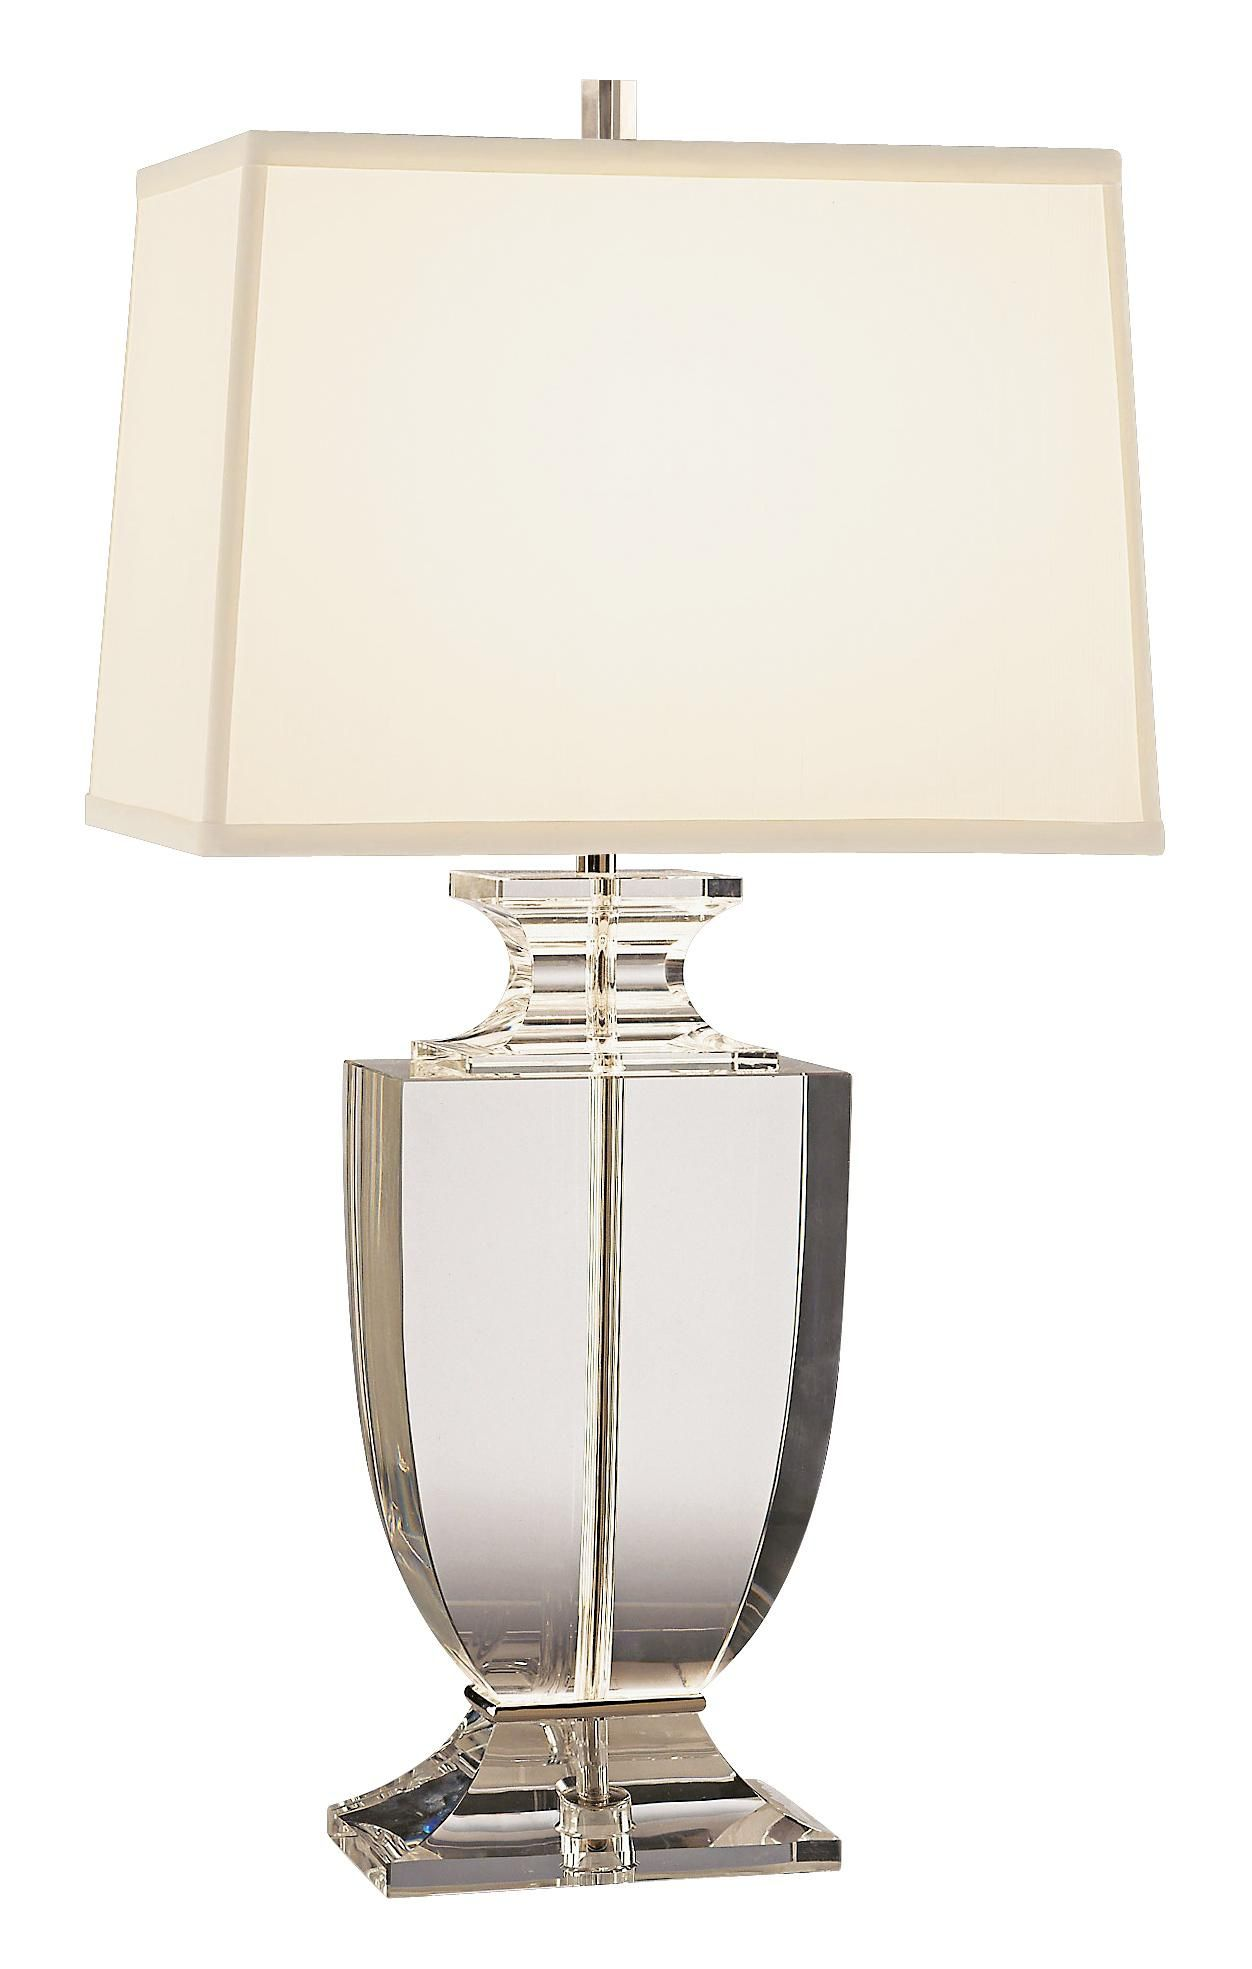 White table lamps bedroom - Artemis Clear Lead Crystal Table Lamp With Off White Shade More